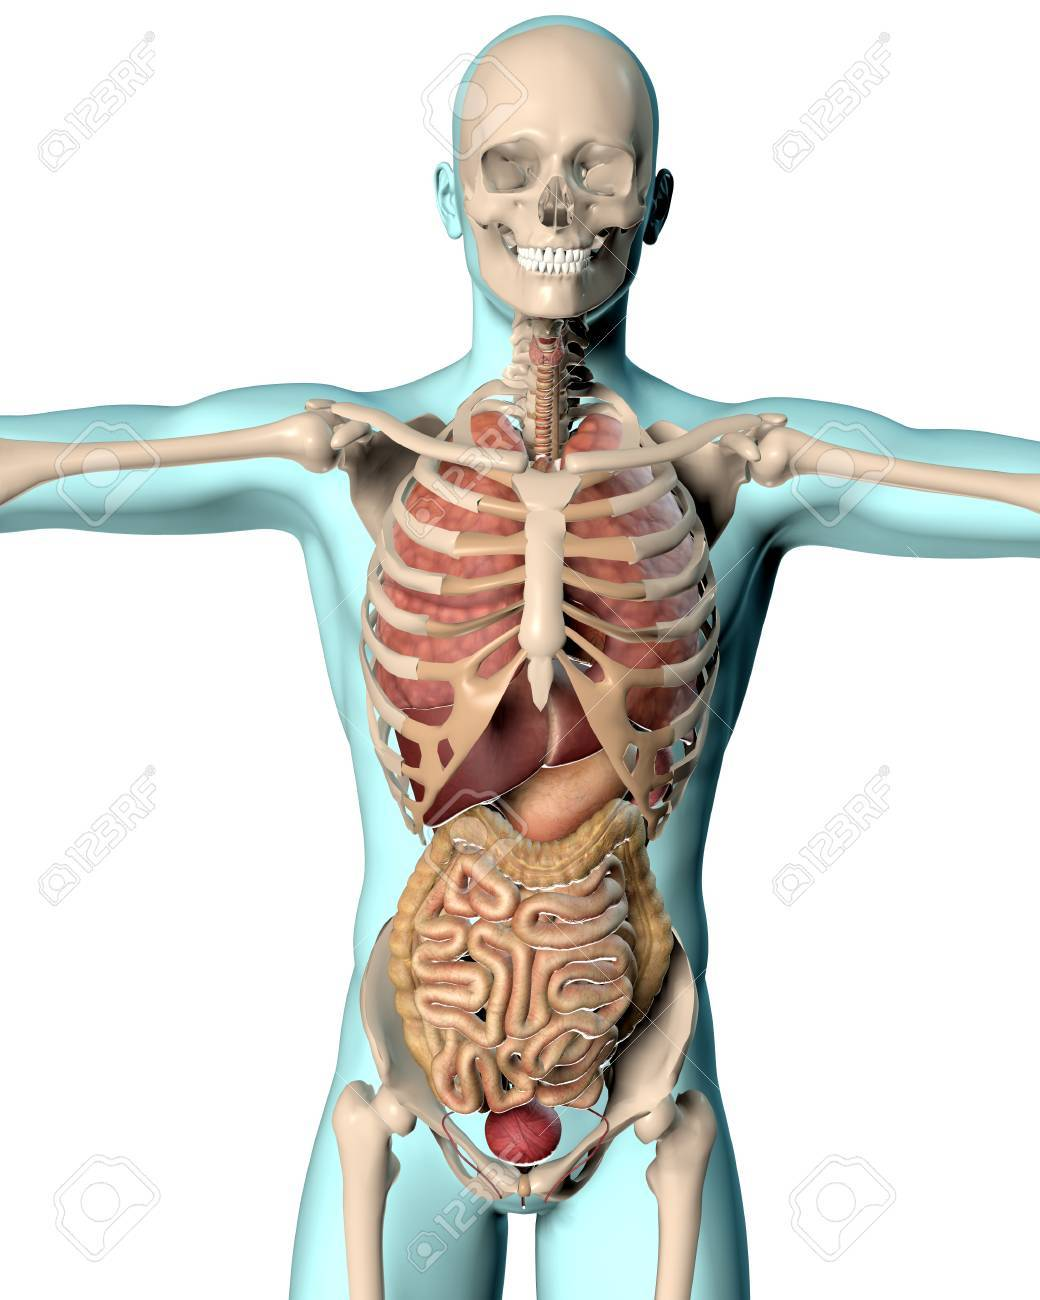 3D Render Of A Medical Image Of A Male Figure Showing Internal ...